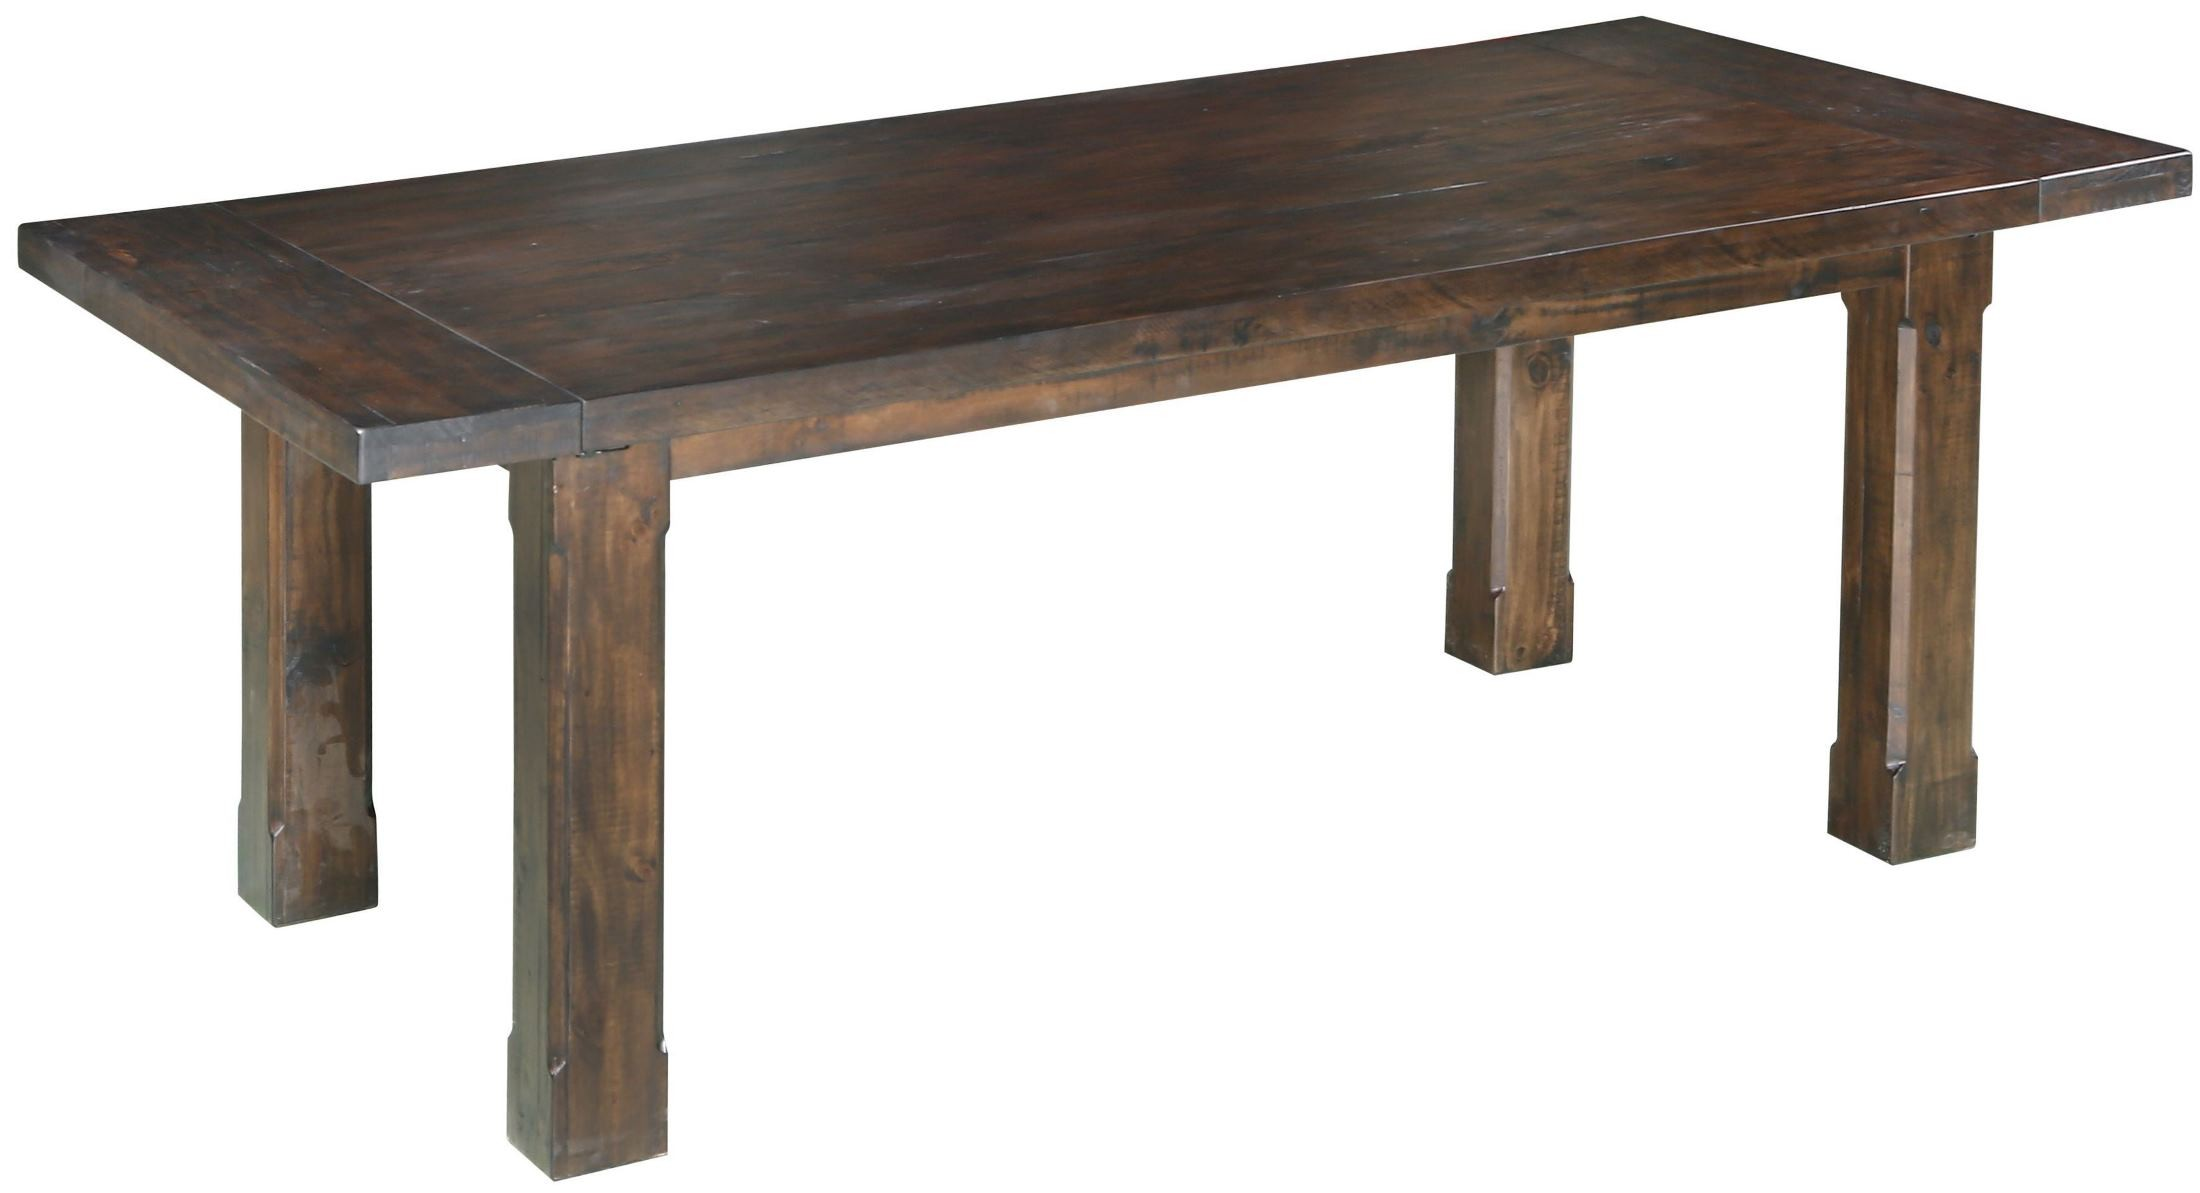 Pine Hill Warm Rustic Pine Extendable Rectangular Dining  : d3561 20 from colemanfurniture.com size 2200 x 1193 jpeg 149kB